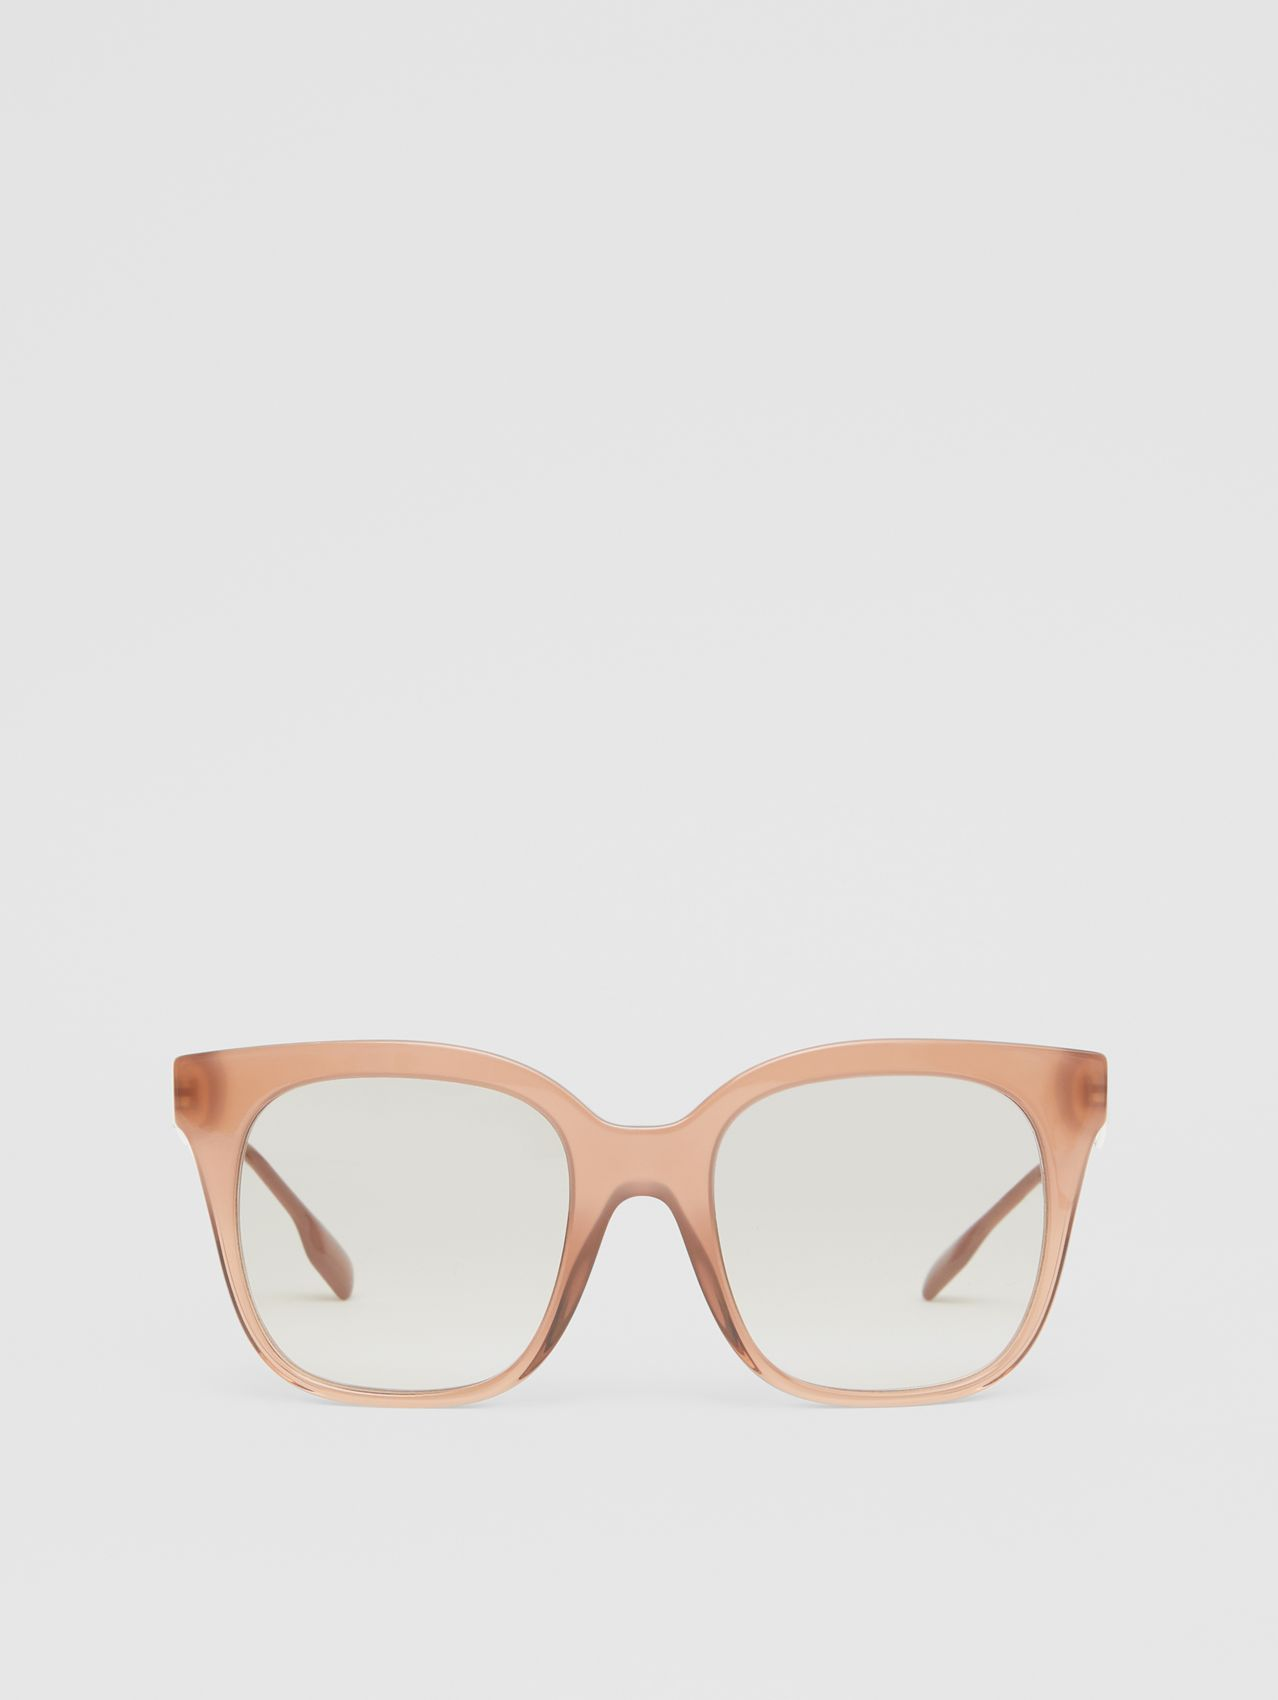 Butterfly Frame Sunglasses in Nude Pink